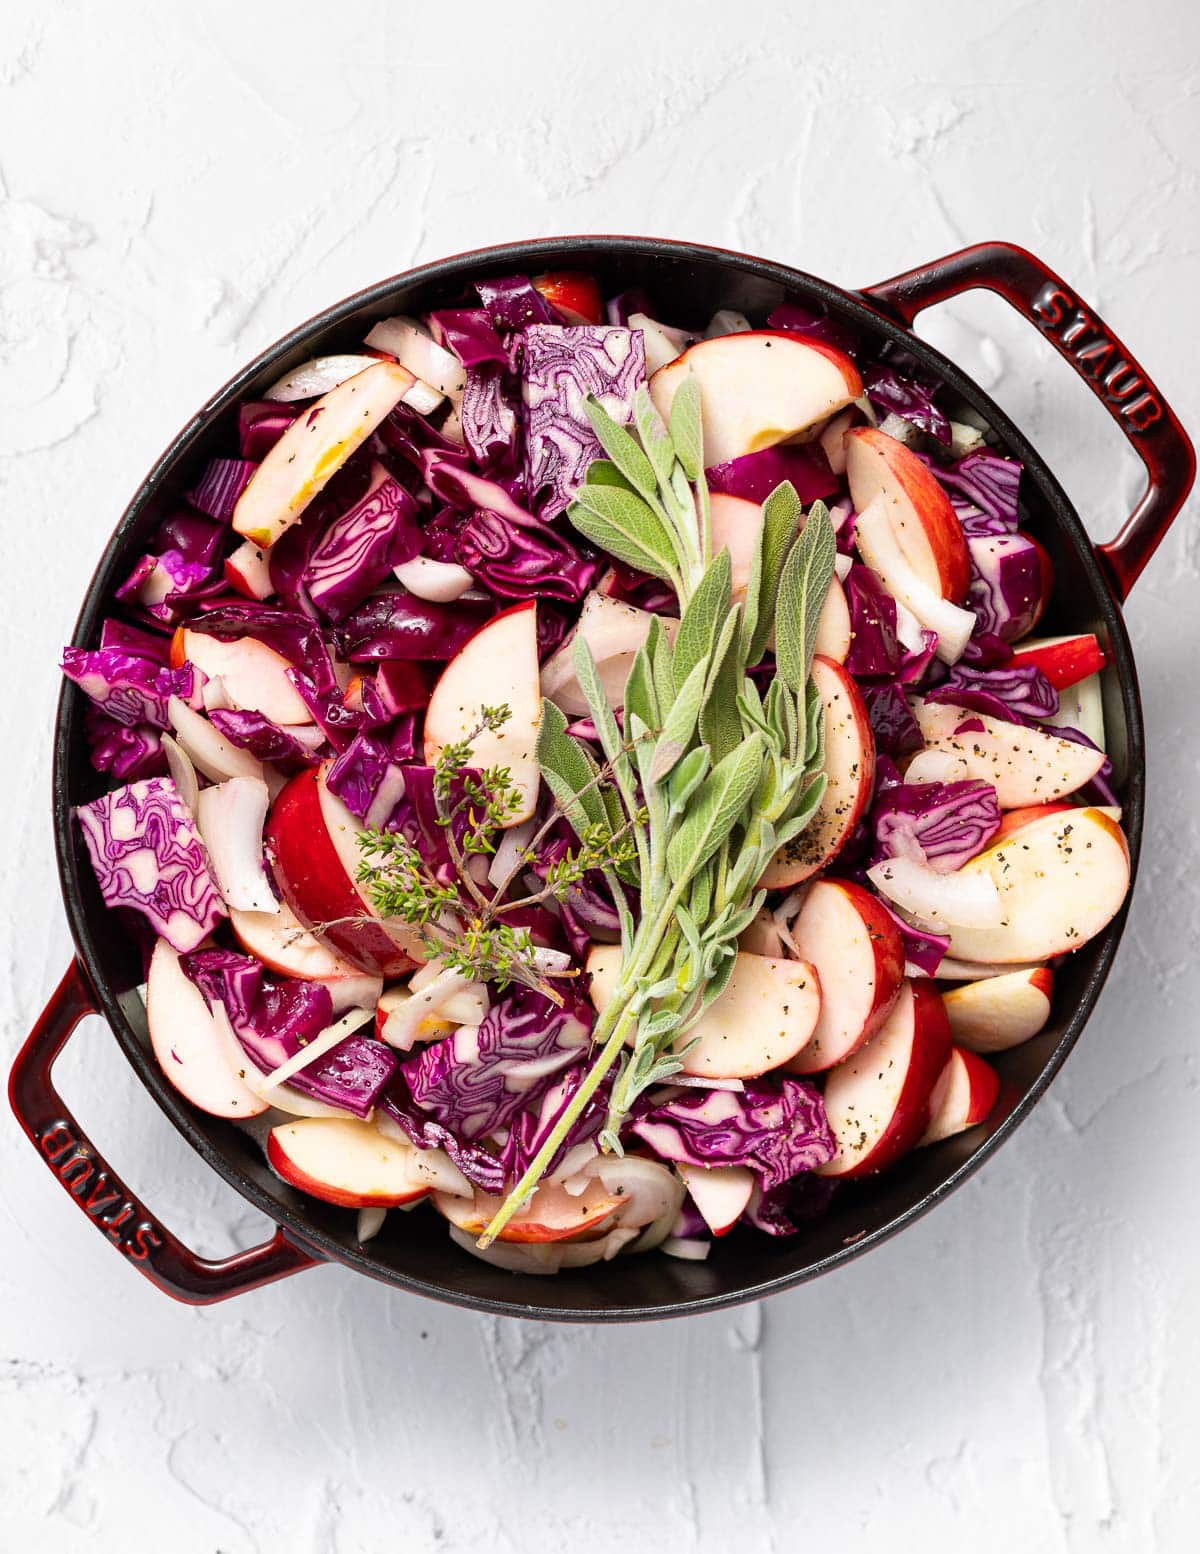 red cabbage, apples and herbs in a skillet